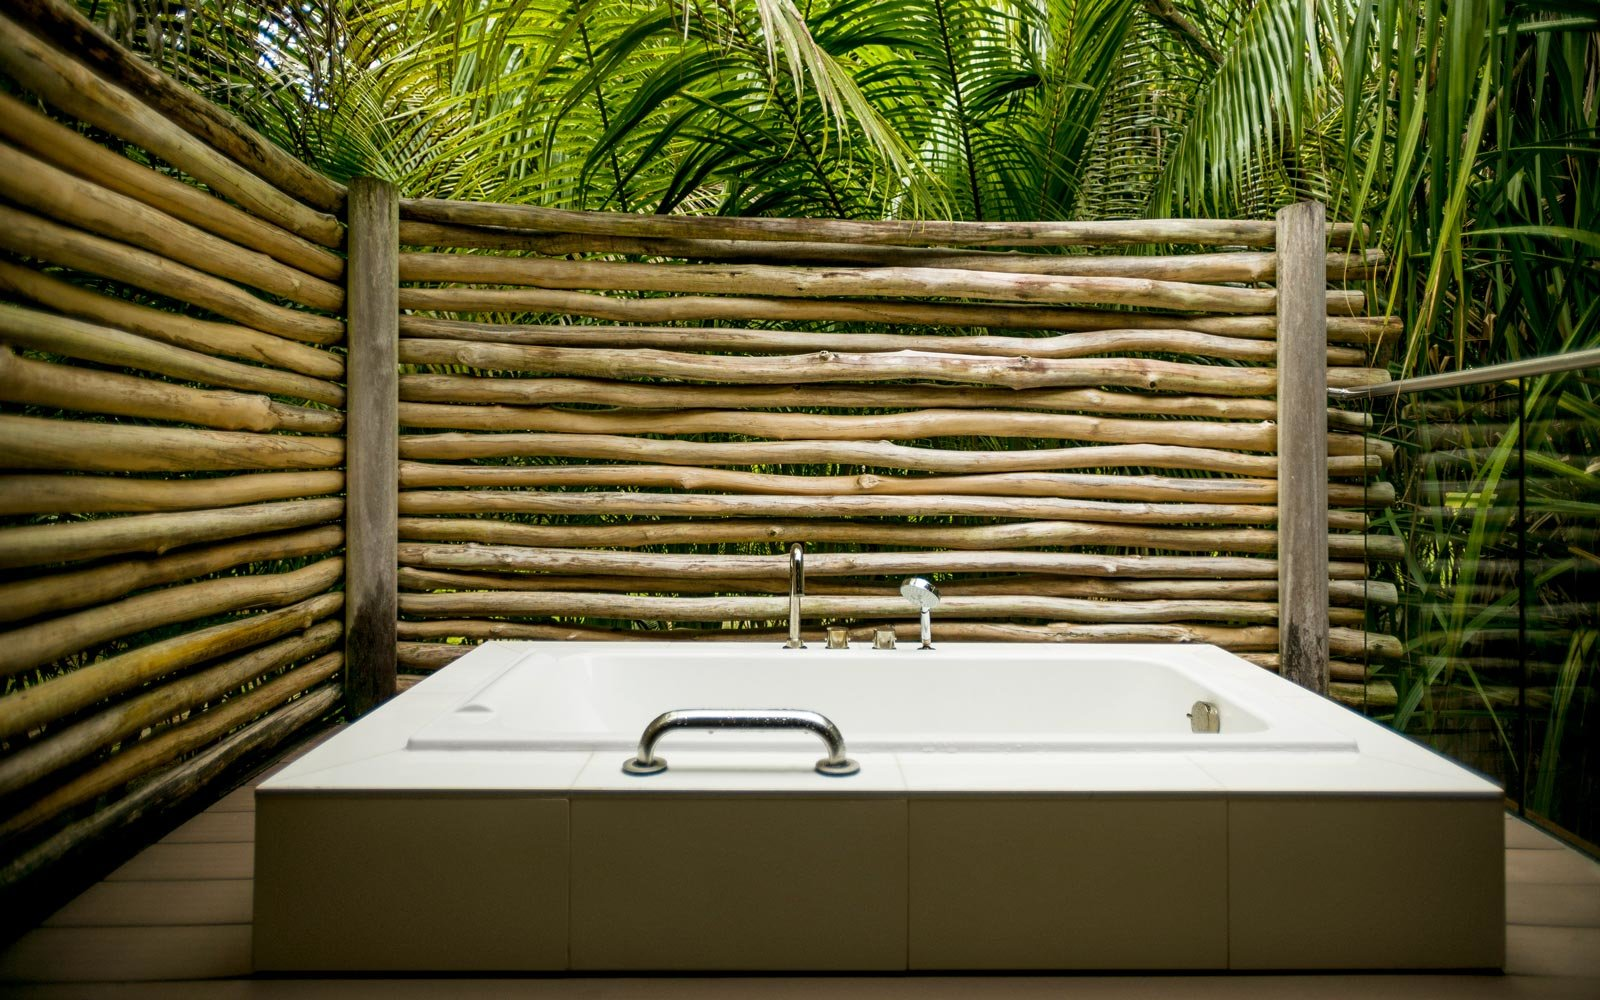 Bathtub at the Brando hotel